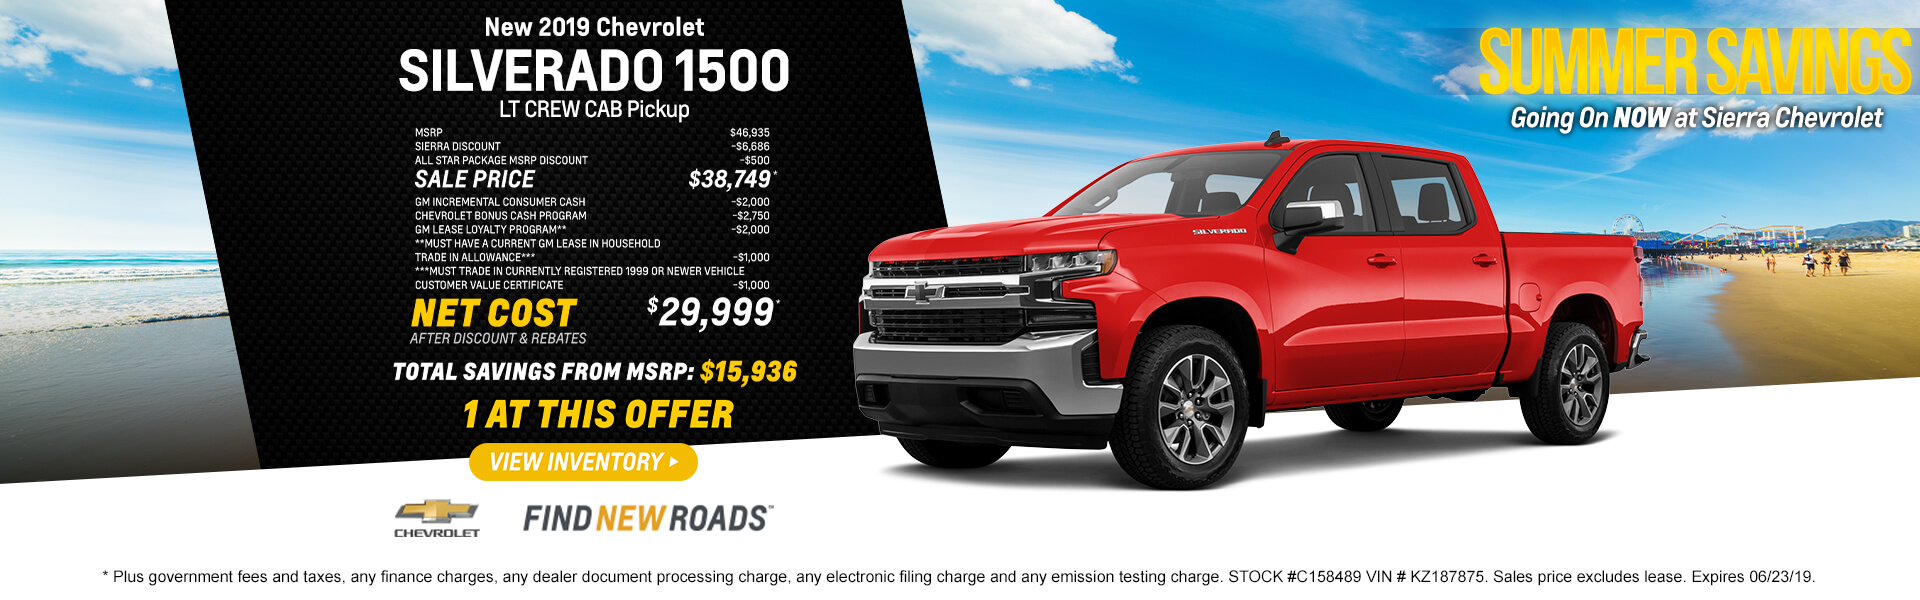 2019 CHEVROLET SILVERADO 1500 LT CREW CAB Pickup  MSRP  $46,935 SIERRA DISCOUNT -$6,686 All Star Package MSRP discount  -$500 SALE PRICE $38,749* GM INCREMENTAL CONSUMER CASH -$2,000 CHEVROLET BONUS CASH PROGRAM -$2,750 GM LEASE LOYALTY PROGRAM***  -$2,000 ***Must have a current GM lease in household  TRADE IN ALLOWANCE***  -$1,000 ***Must trade in currently registered 1999 or newer vehicle Customer Value Certificate  -$1,000  NET COST after Discount & Rebates  $29,999*  Total Savings From MSRP $15,936  1 at this offer  * Plus government fees and taxes, any finance charges, any dealer document processing charge, any electronic filing charge and any emission testing charge. STOCK #C158489 VIN # KZ187875. Sales price excludes lease. Expires 06/23/19.